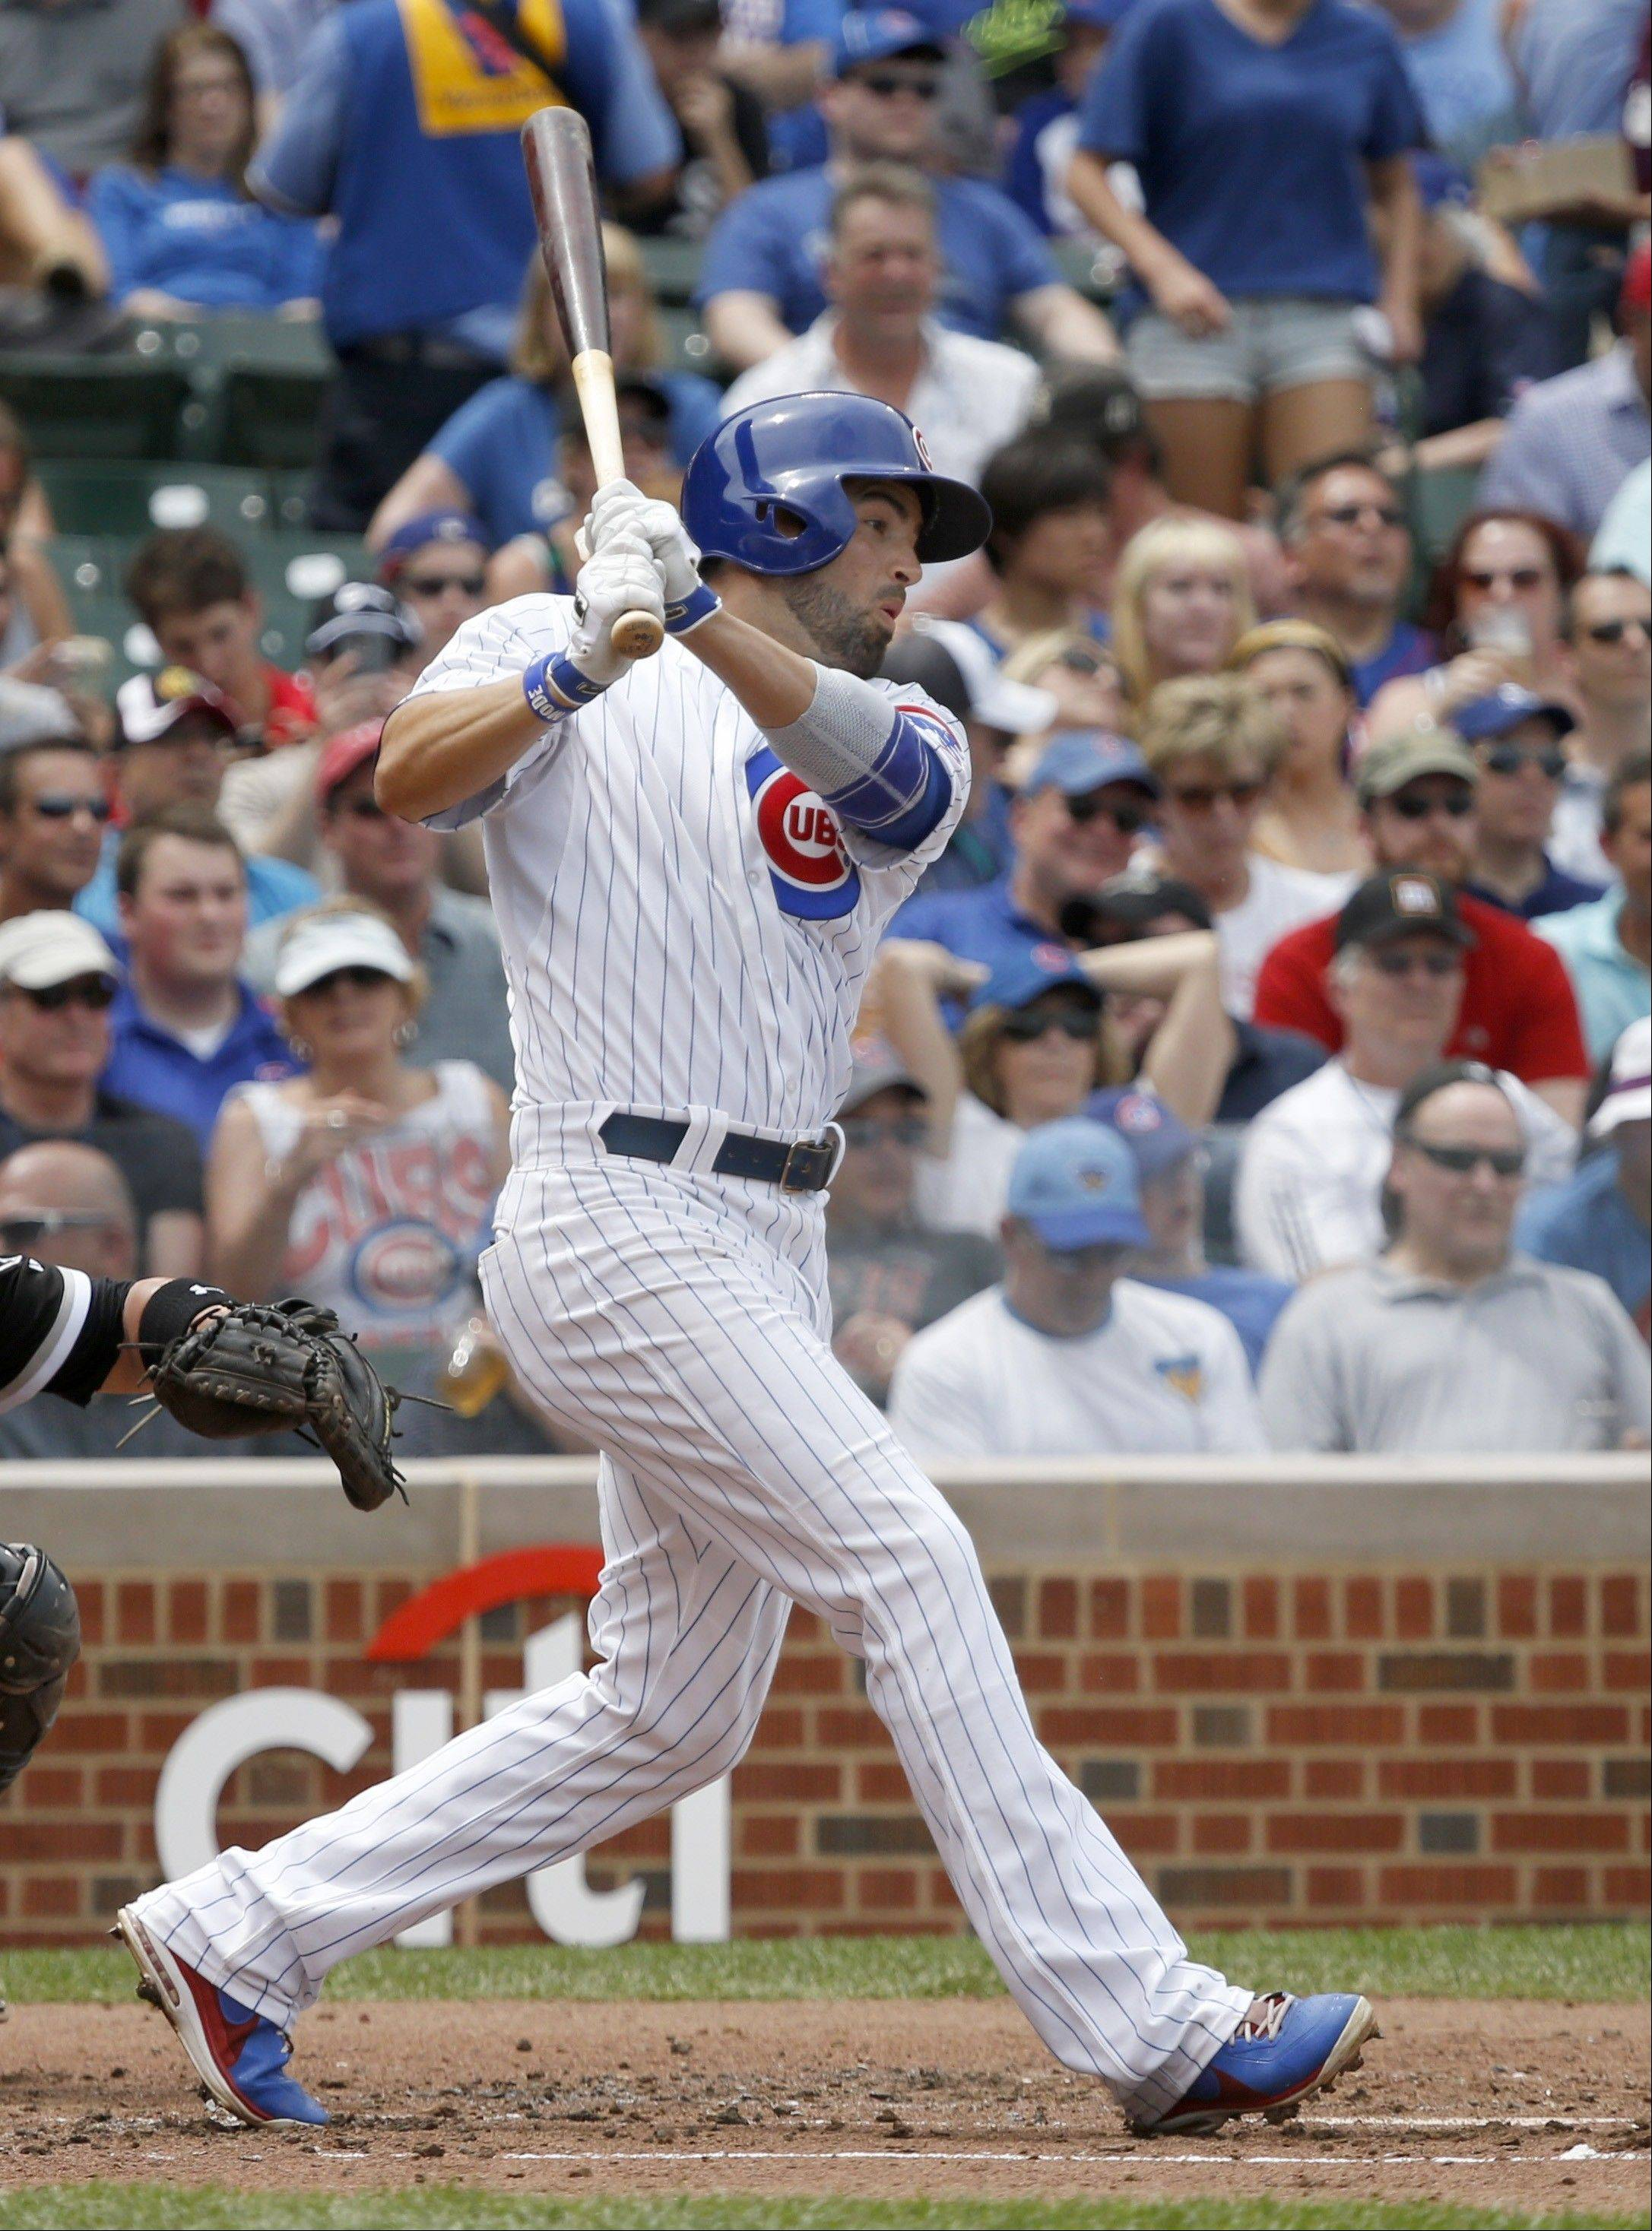 Chicago Cubs' David DeJesus hits an RBI single off Chicago White Sox starting pitcher Jake Peavy, scoring Darwin Barney, during the second inning of an interleague baseball game Thursday, May 30, 2013, in Chicago.